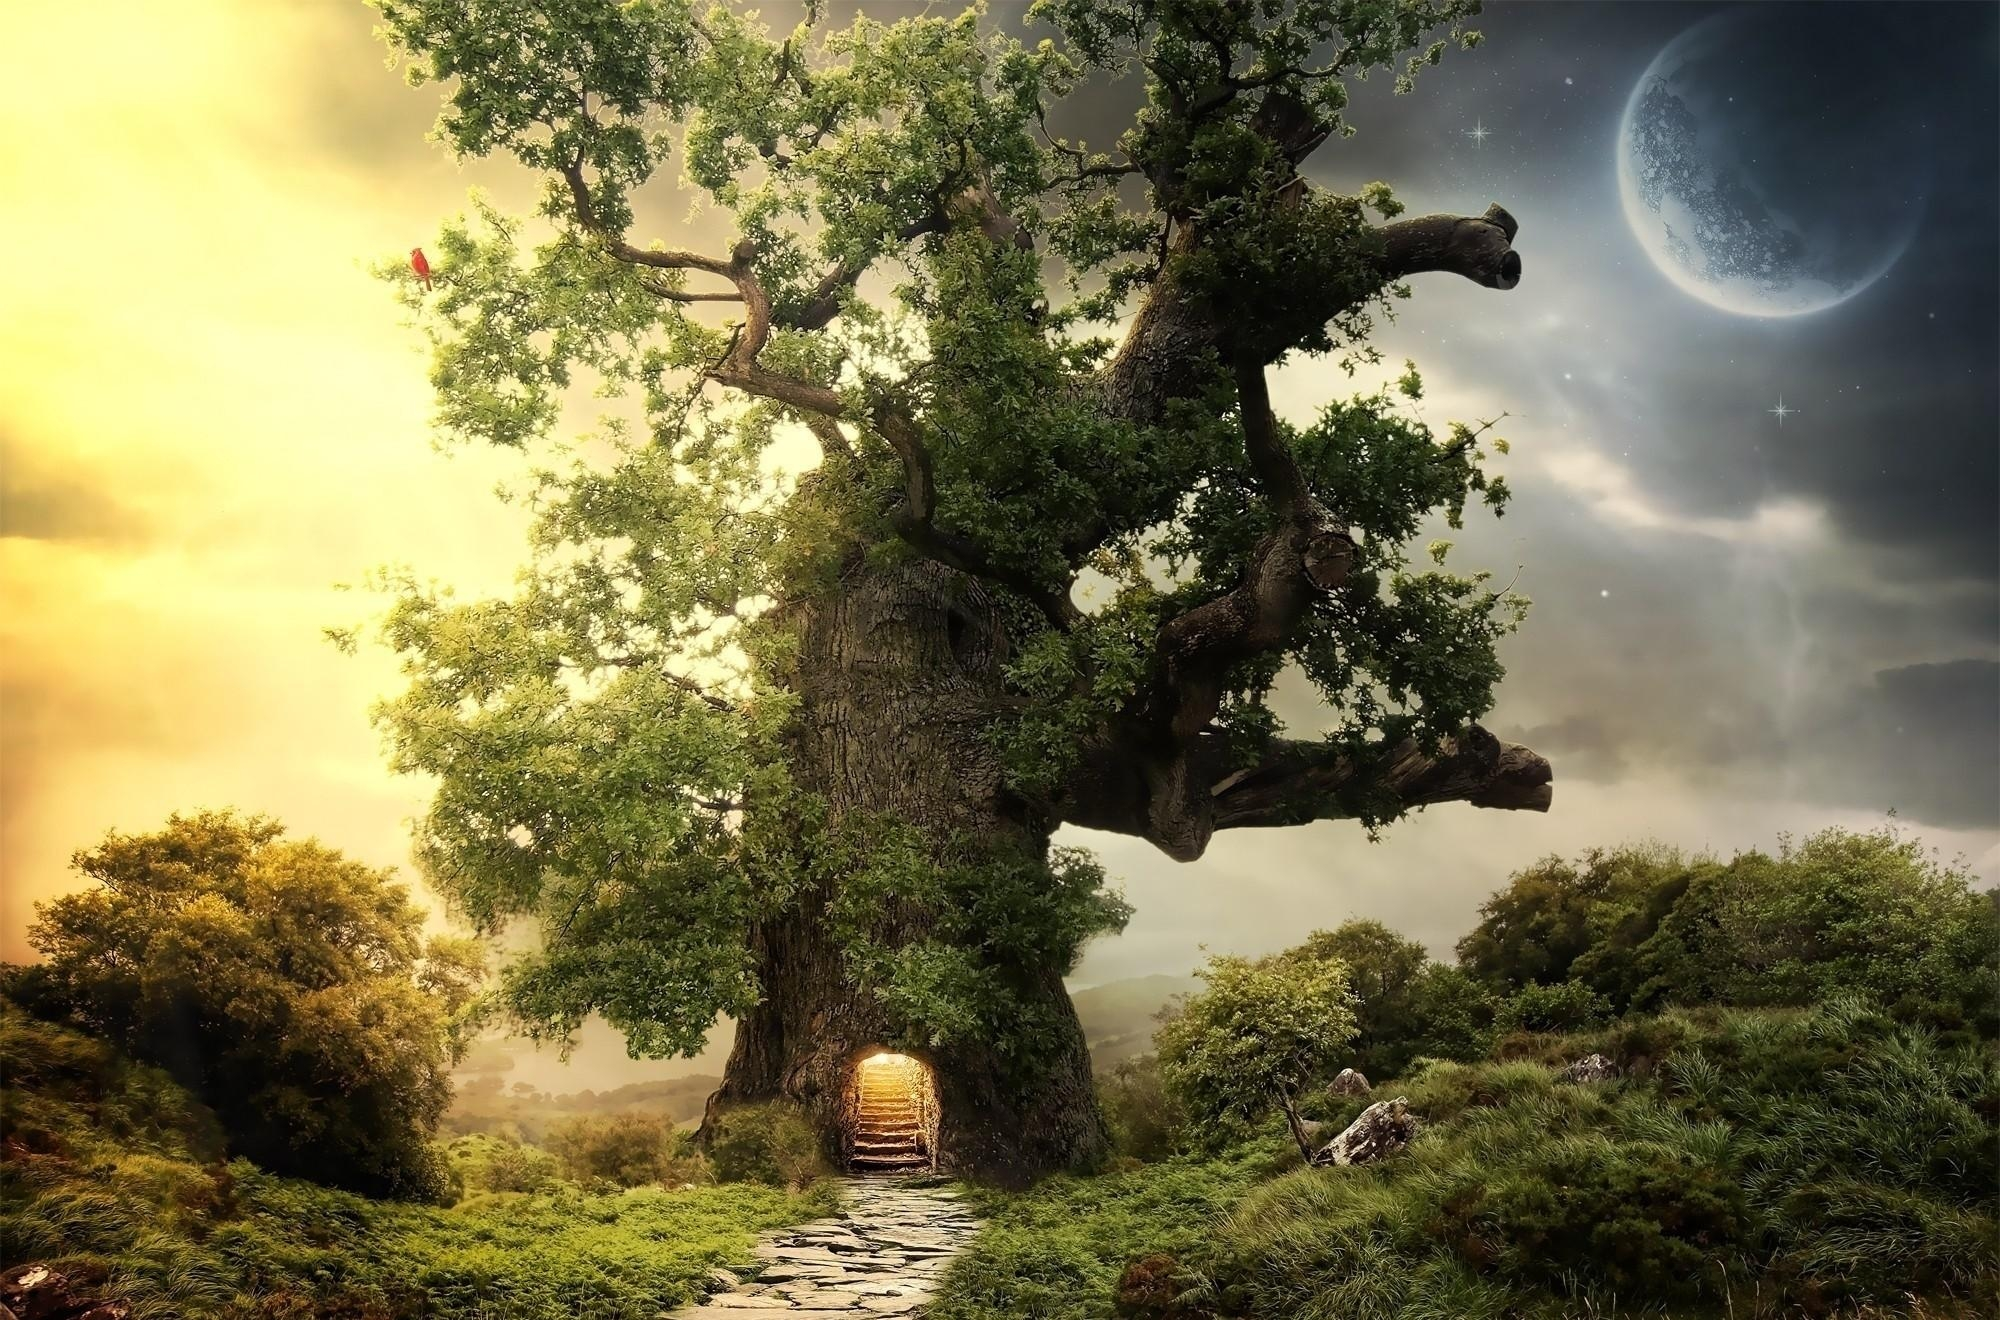 134579 download wallpaper Fantasy, Wood, Tree, Greens, Entrance, Steps, Planet screensavers and pictures for free